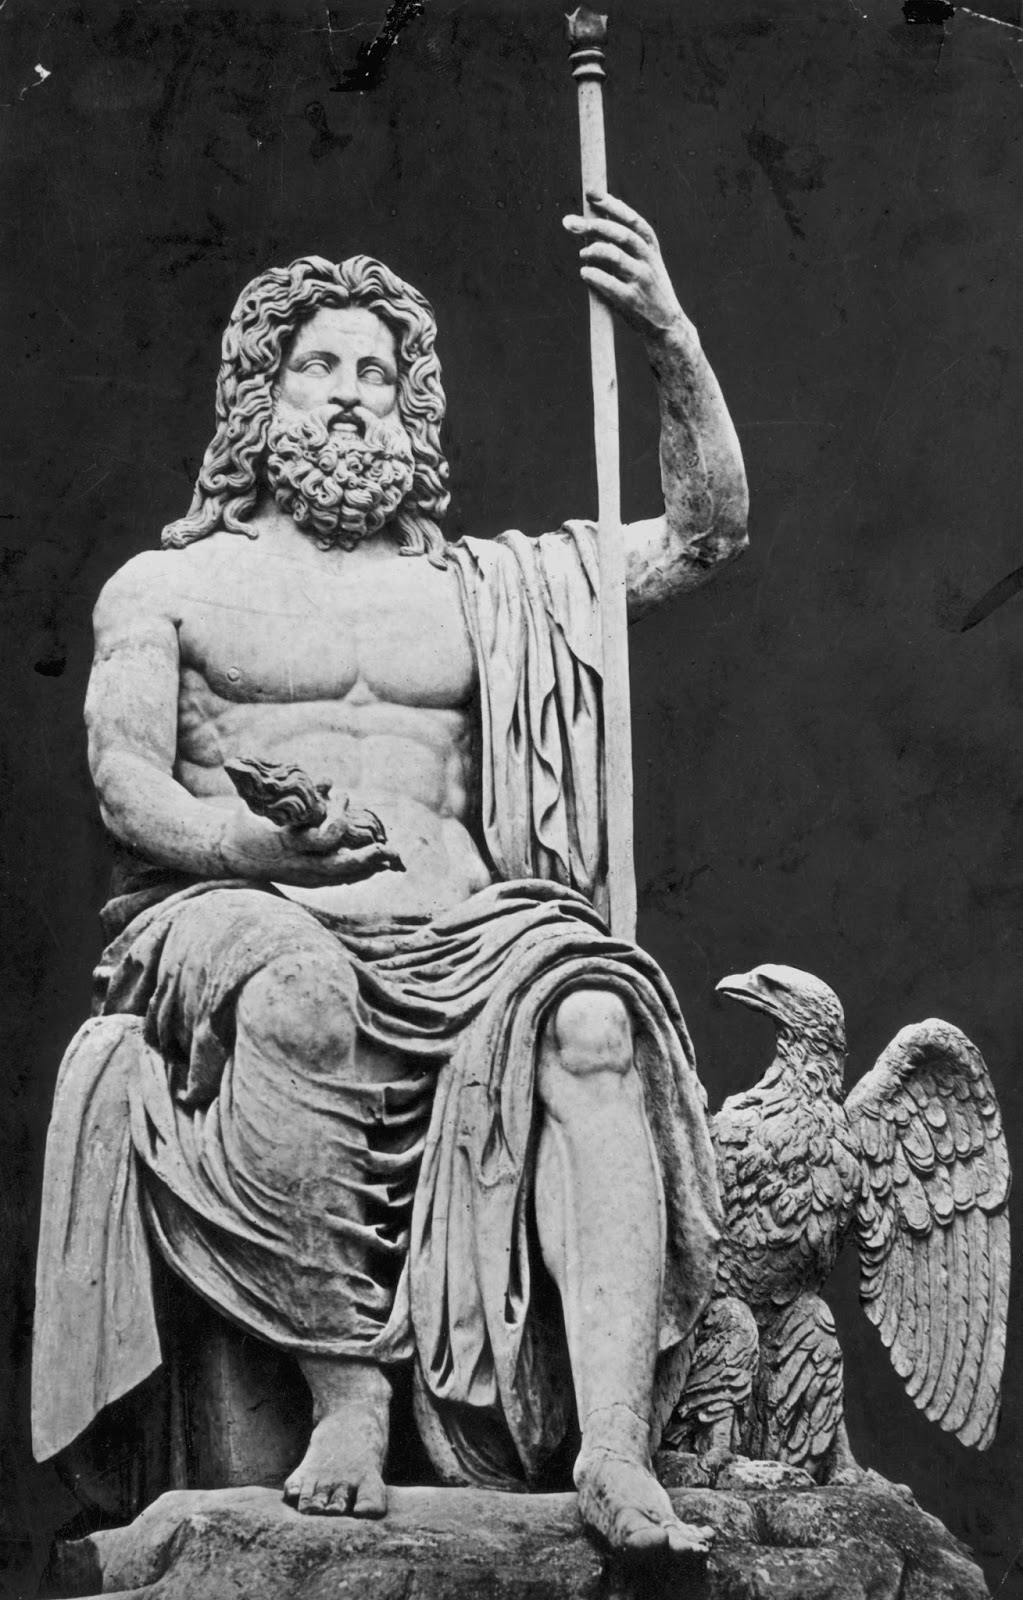 greek god apollo s influence today Zeus with the thunderbolt the ancient greeks believed there were a great  number of gods and goddesses  king of all the gods and goddesses was zeus  he could control the  people today still enjoy hearing stories about the greek  gods.